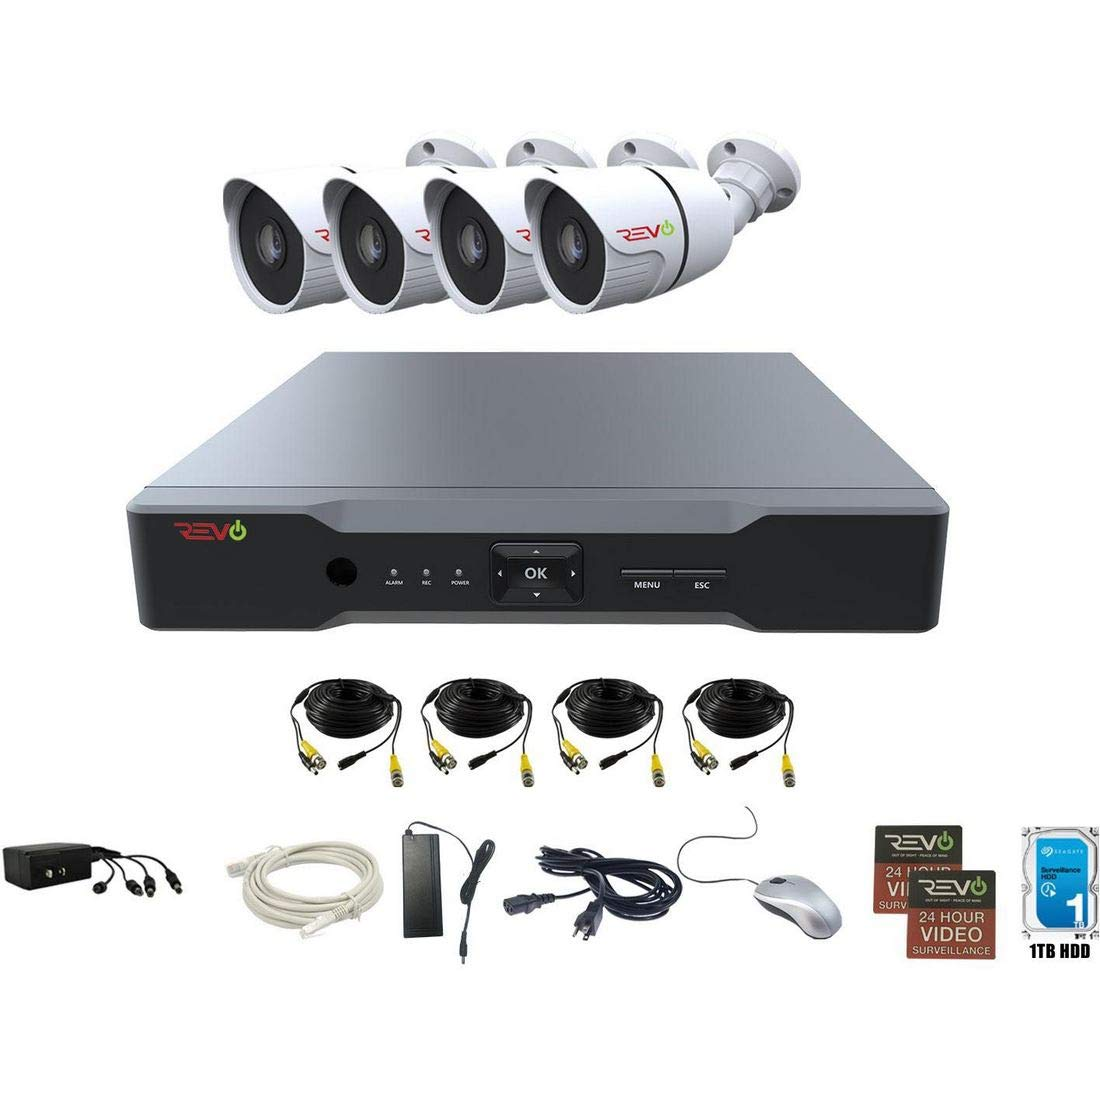 Revo America AeroHD 8Ch. 4MP DVR, 1TB HDD Video Security System, 4 x 1080p IR Bullet Cameras Indoor Outdoor – Remote Access via Smart Phone, Tablet, PC MAC